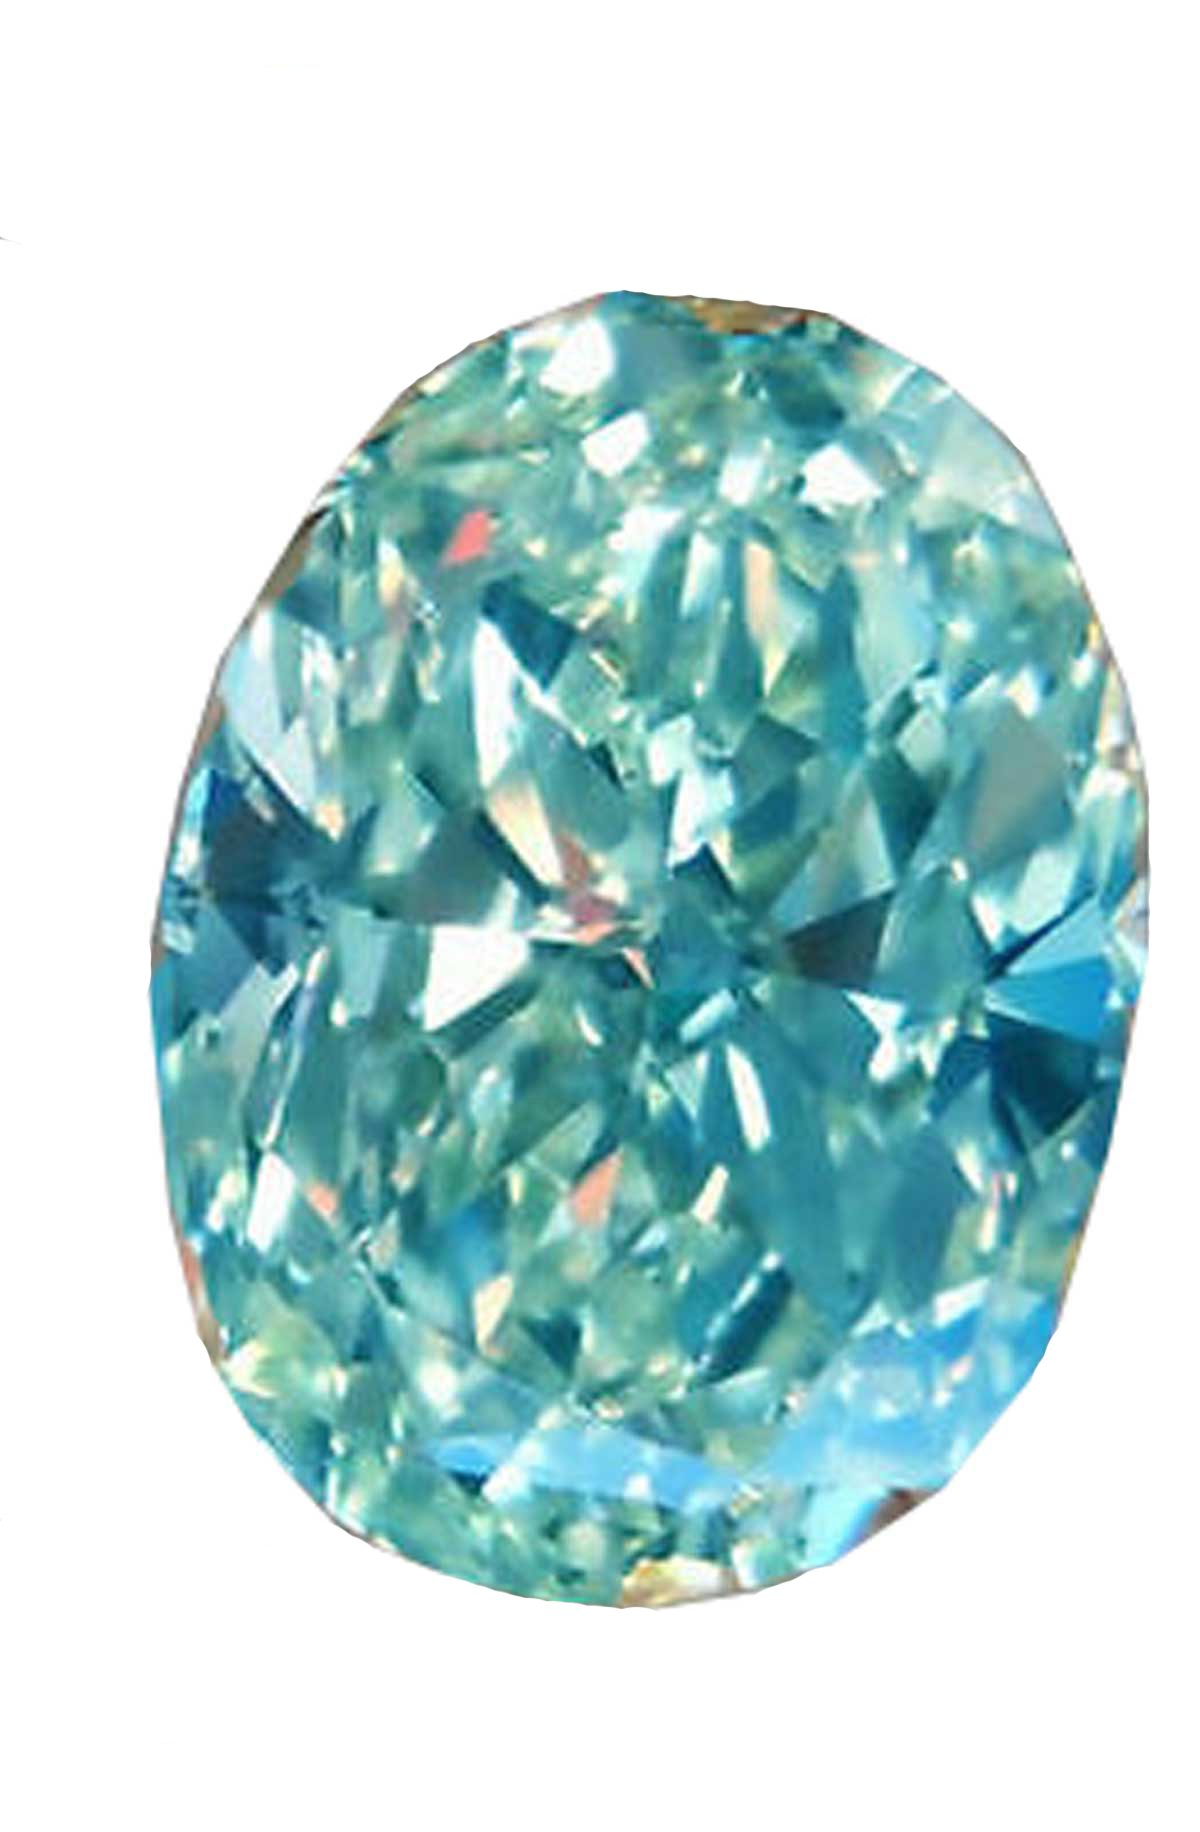 RINGJEWEL 12.7 Ct VS1 Oval Cut Real Loose Moissanite Use 4 Pendant/Ring Blueish Green Color